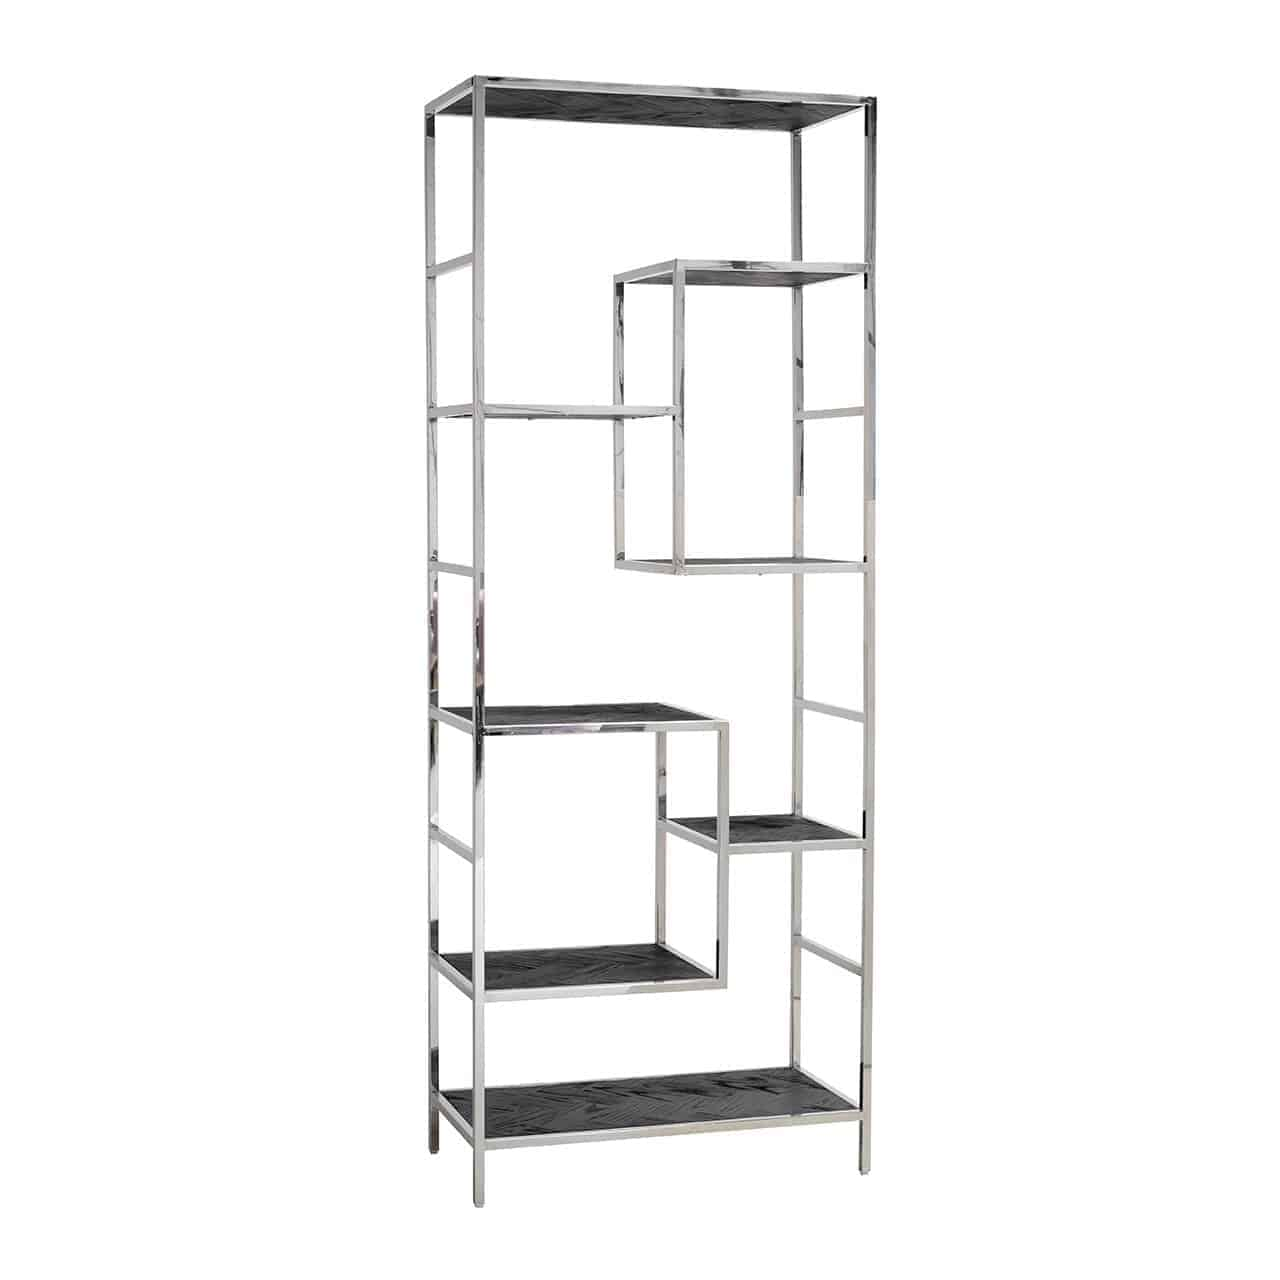 Wall Cabinet Blackbone Silver 7 Shelves